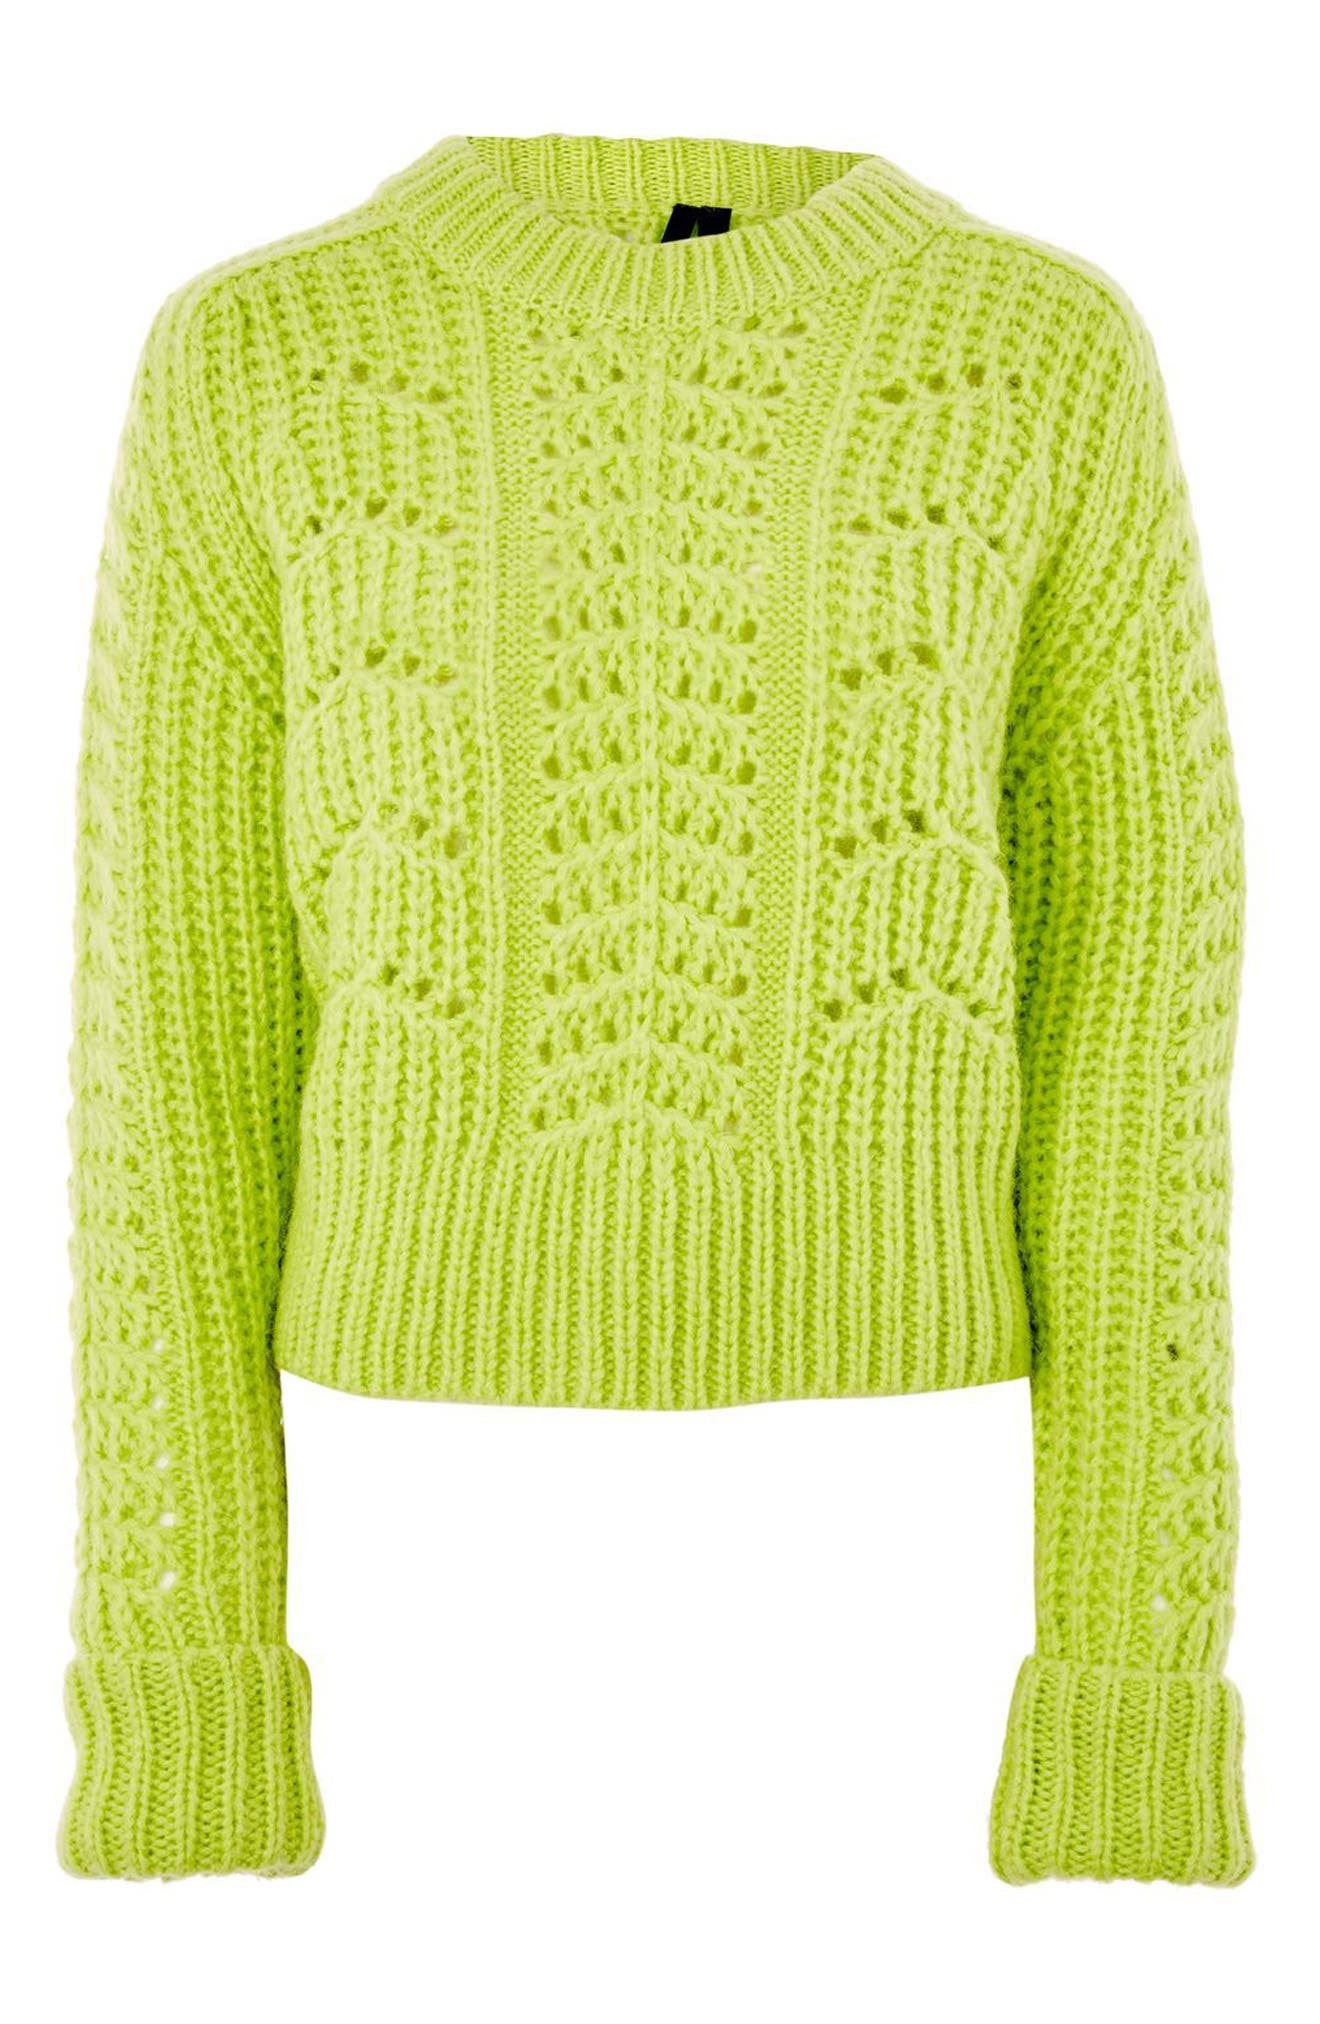 Alternate Image 1 Selected - Topshop Boutique Cable Knit Sweater